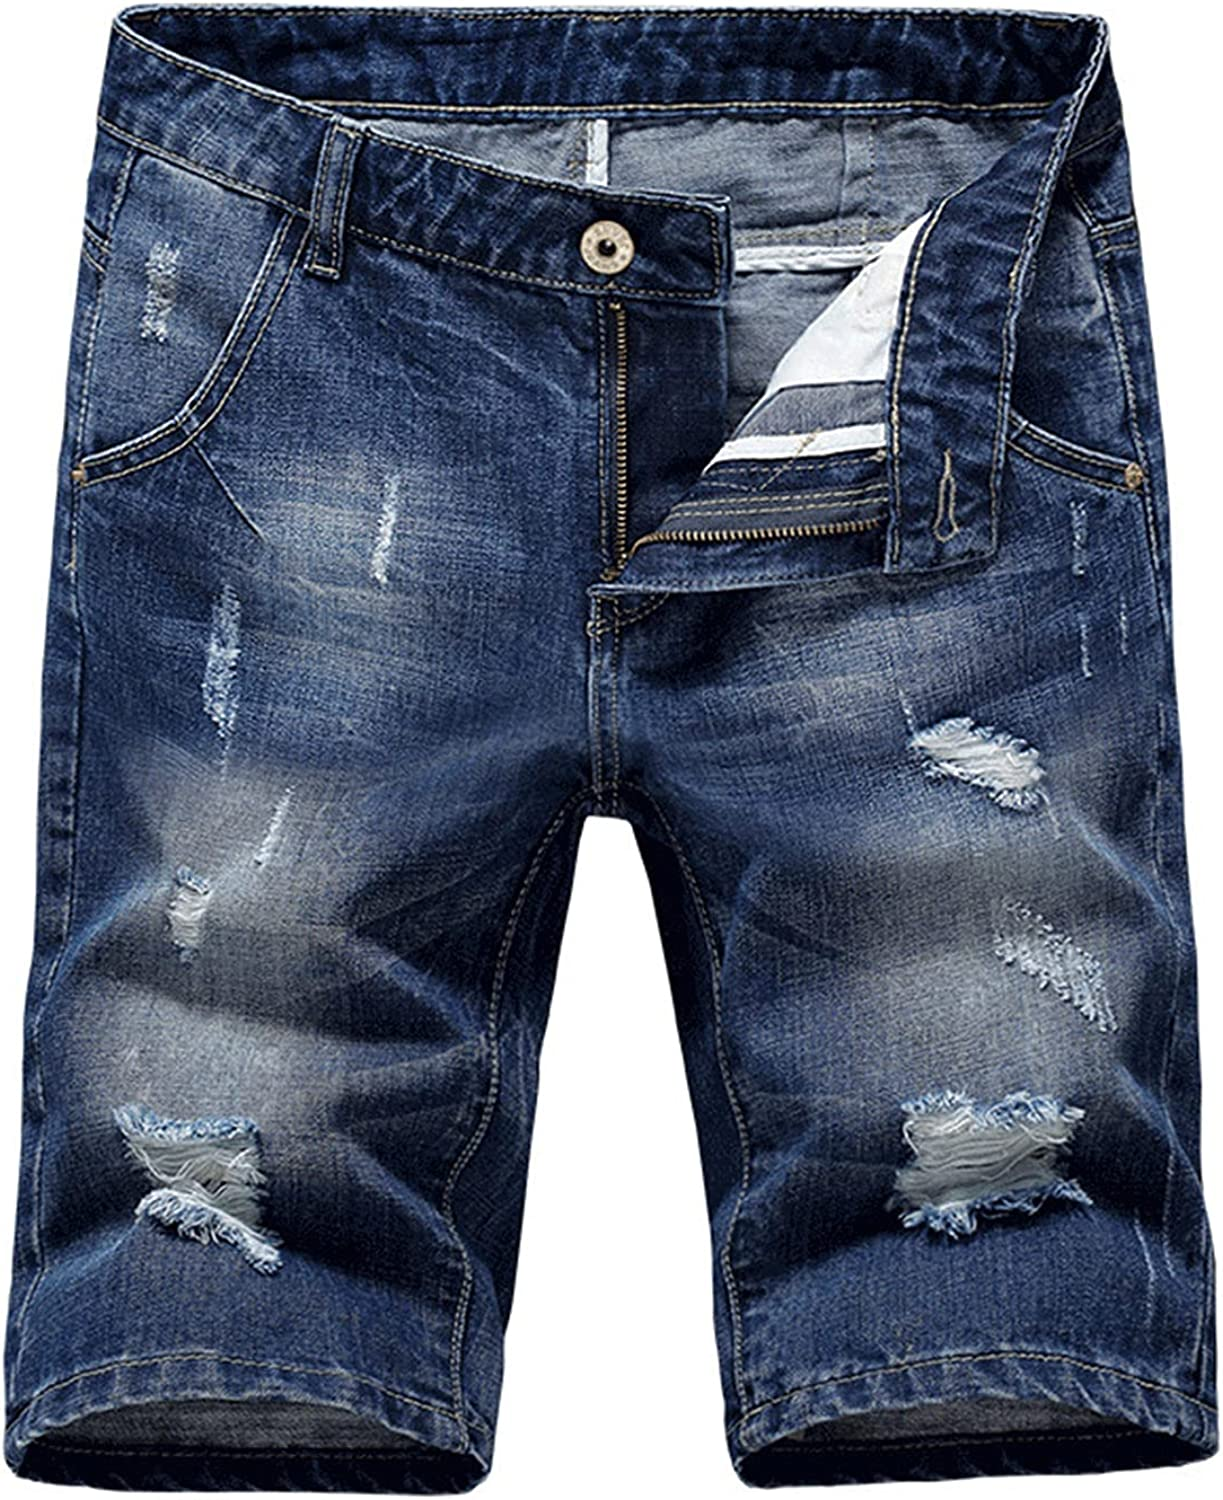 Casual Ripped Denim Shorts for Men Summer Knee Lenght Jeans with Hole Straight Fit Destroyed Short Jean Pants